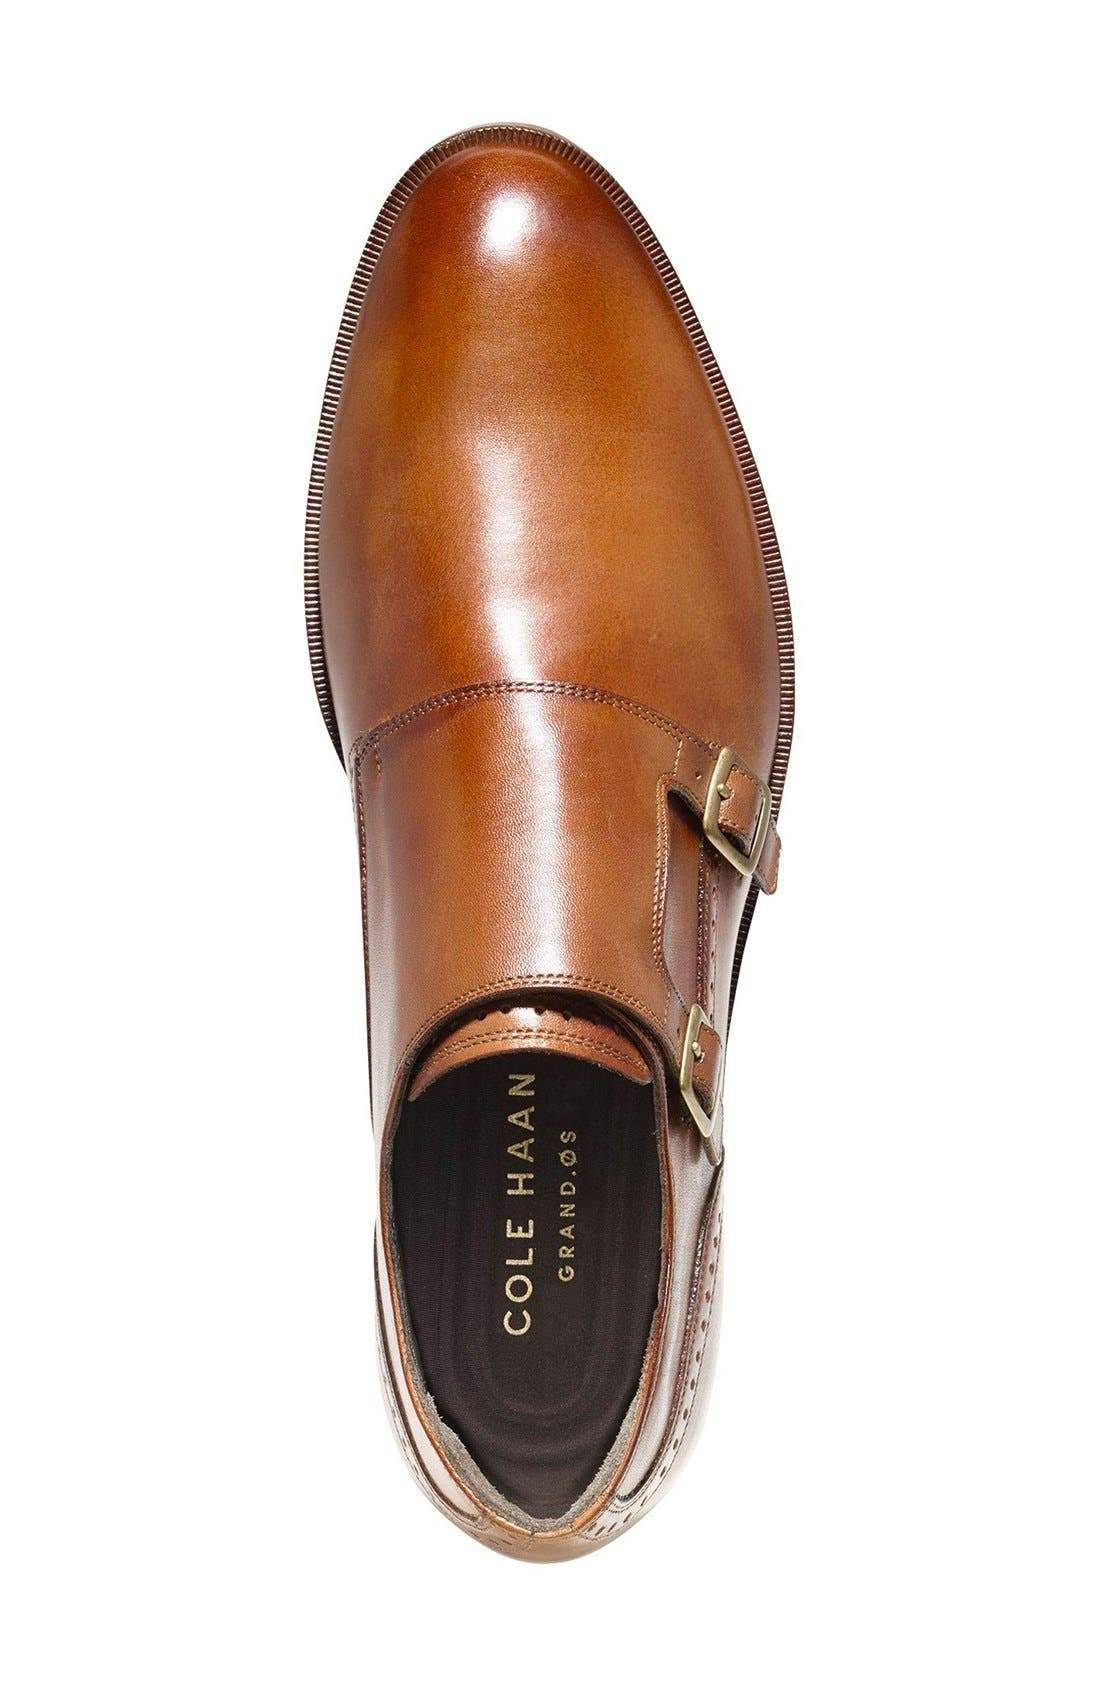 'Harrison' Double Monk Strap Shoe,                             Alternate thumbnail 10, color,                             BRITISH TAN LEATHER